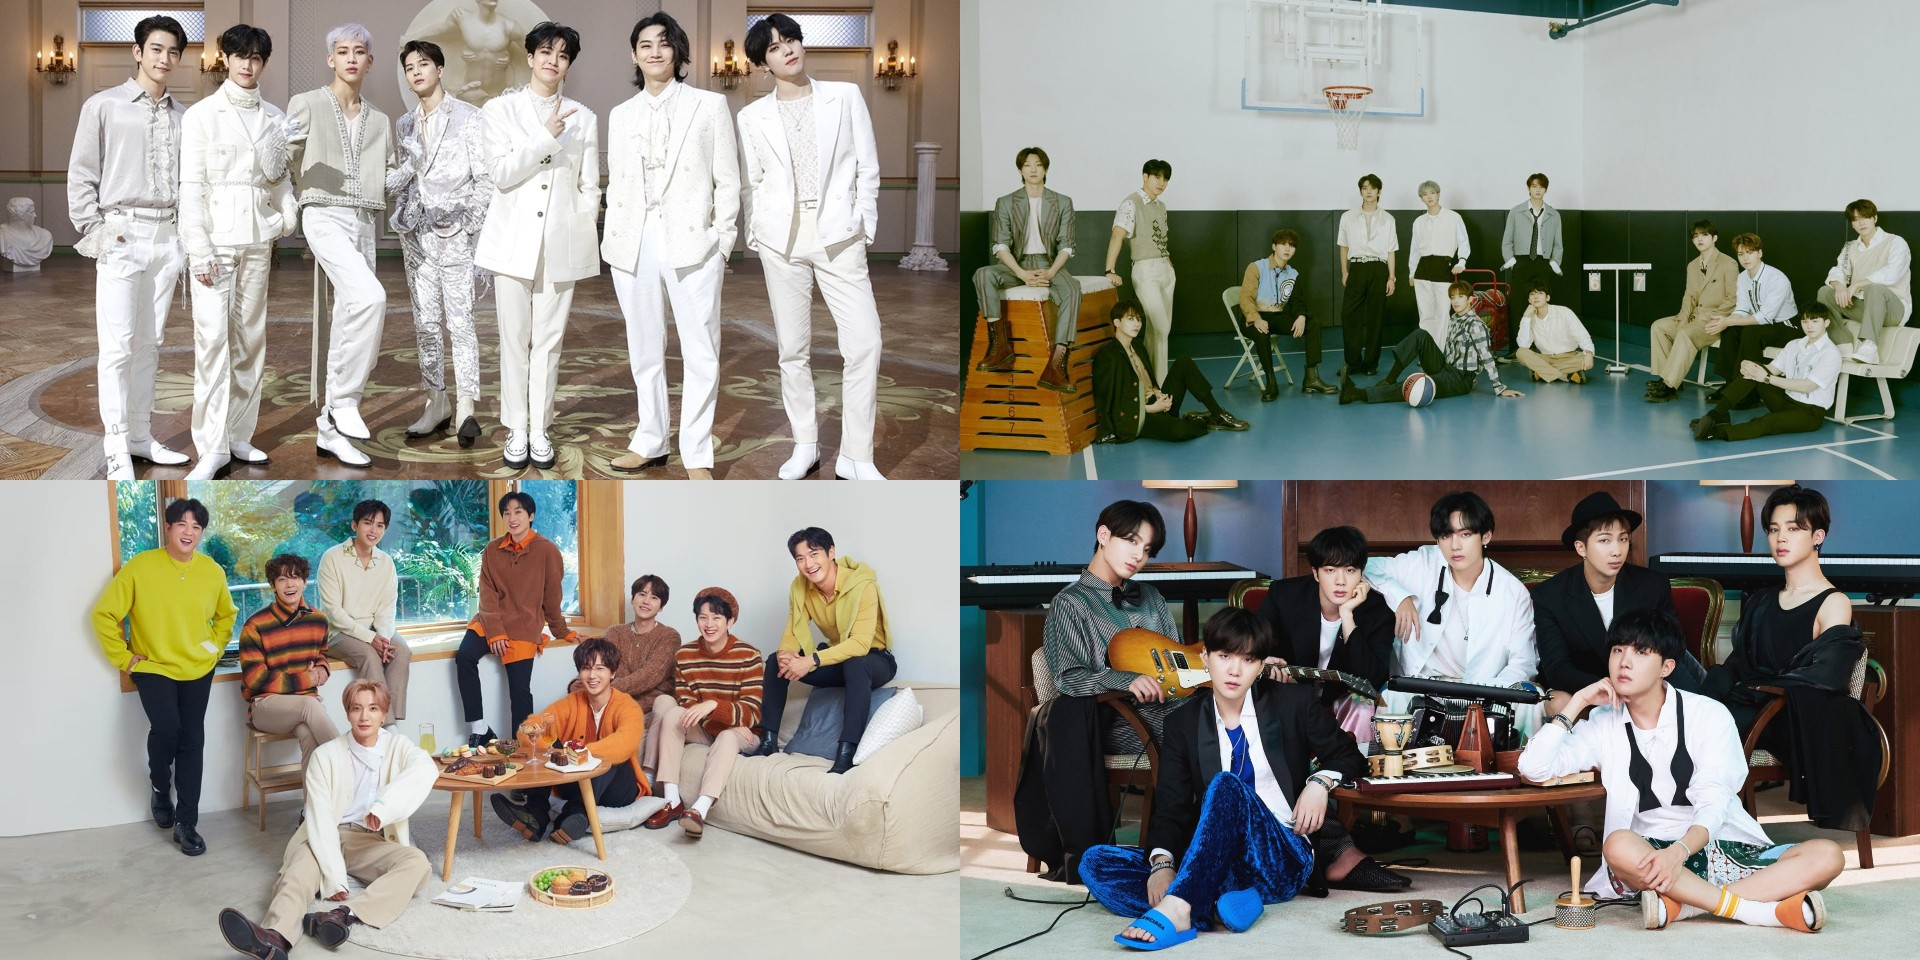 GOT7, SEVENTEEN, Super Junior, BTS, and more to perform at The Fact Music Awards 2020 in December